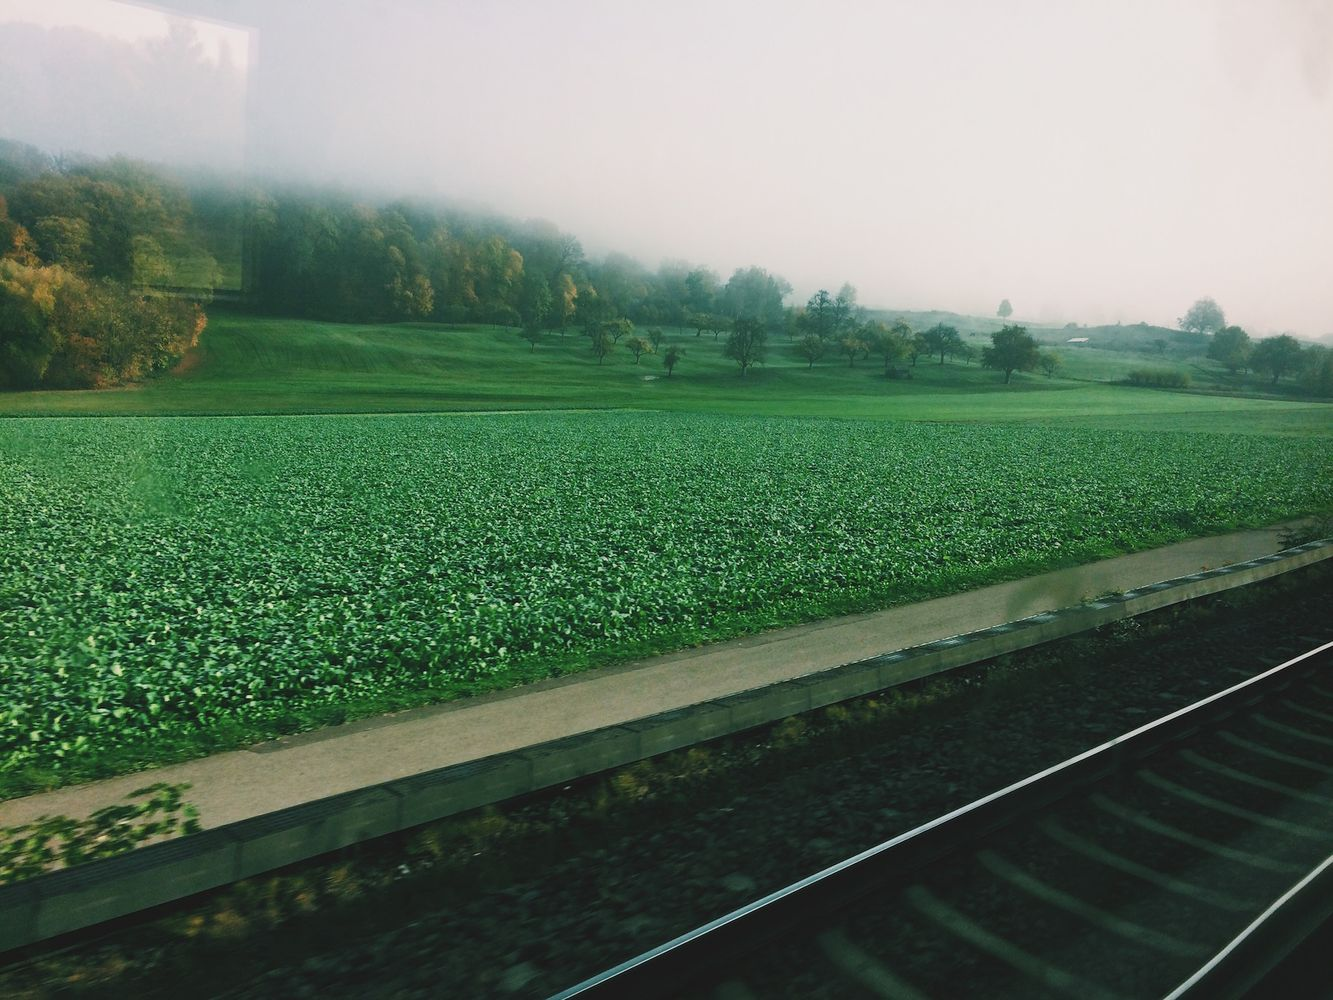 Train through Southern Germany to Ulm